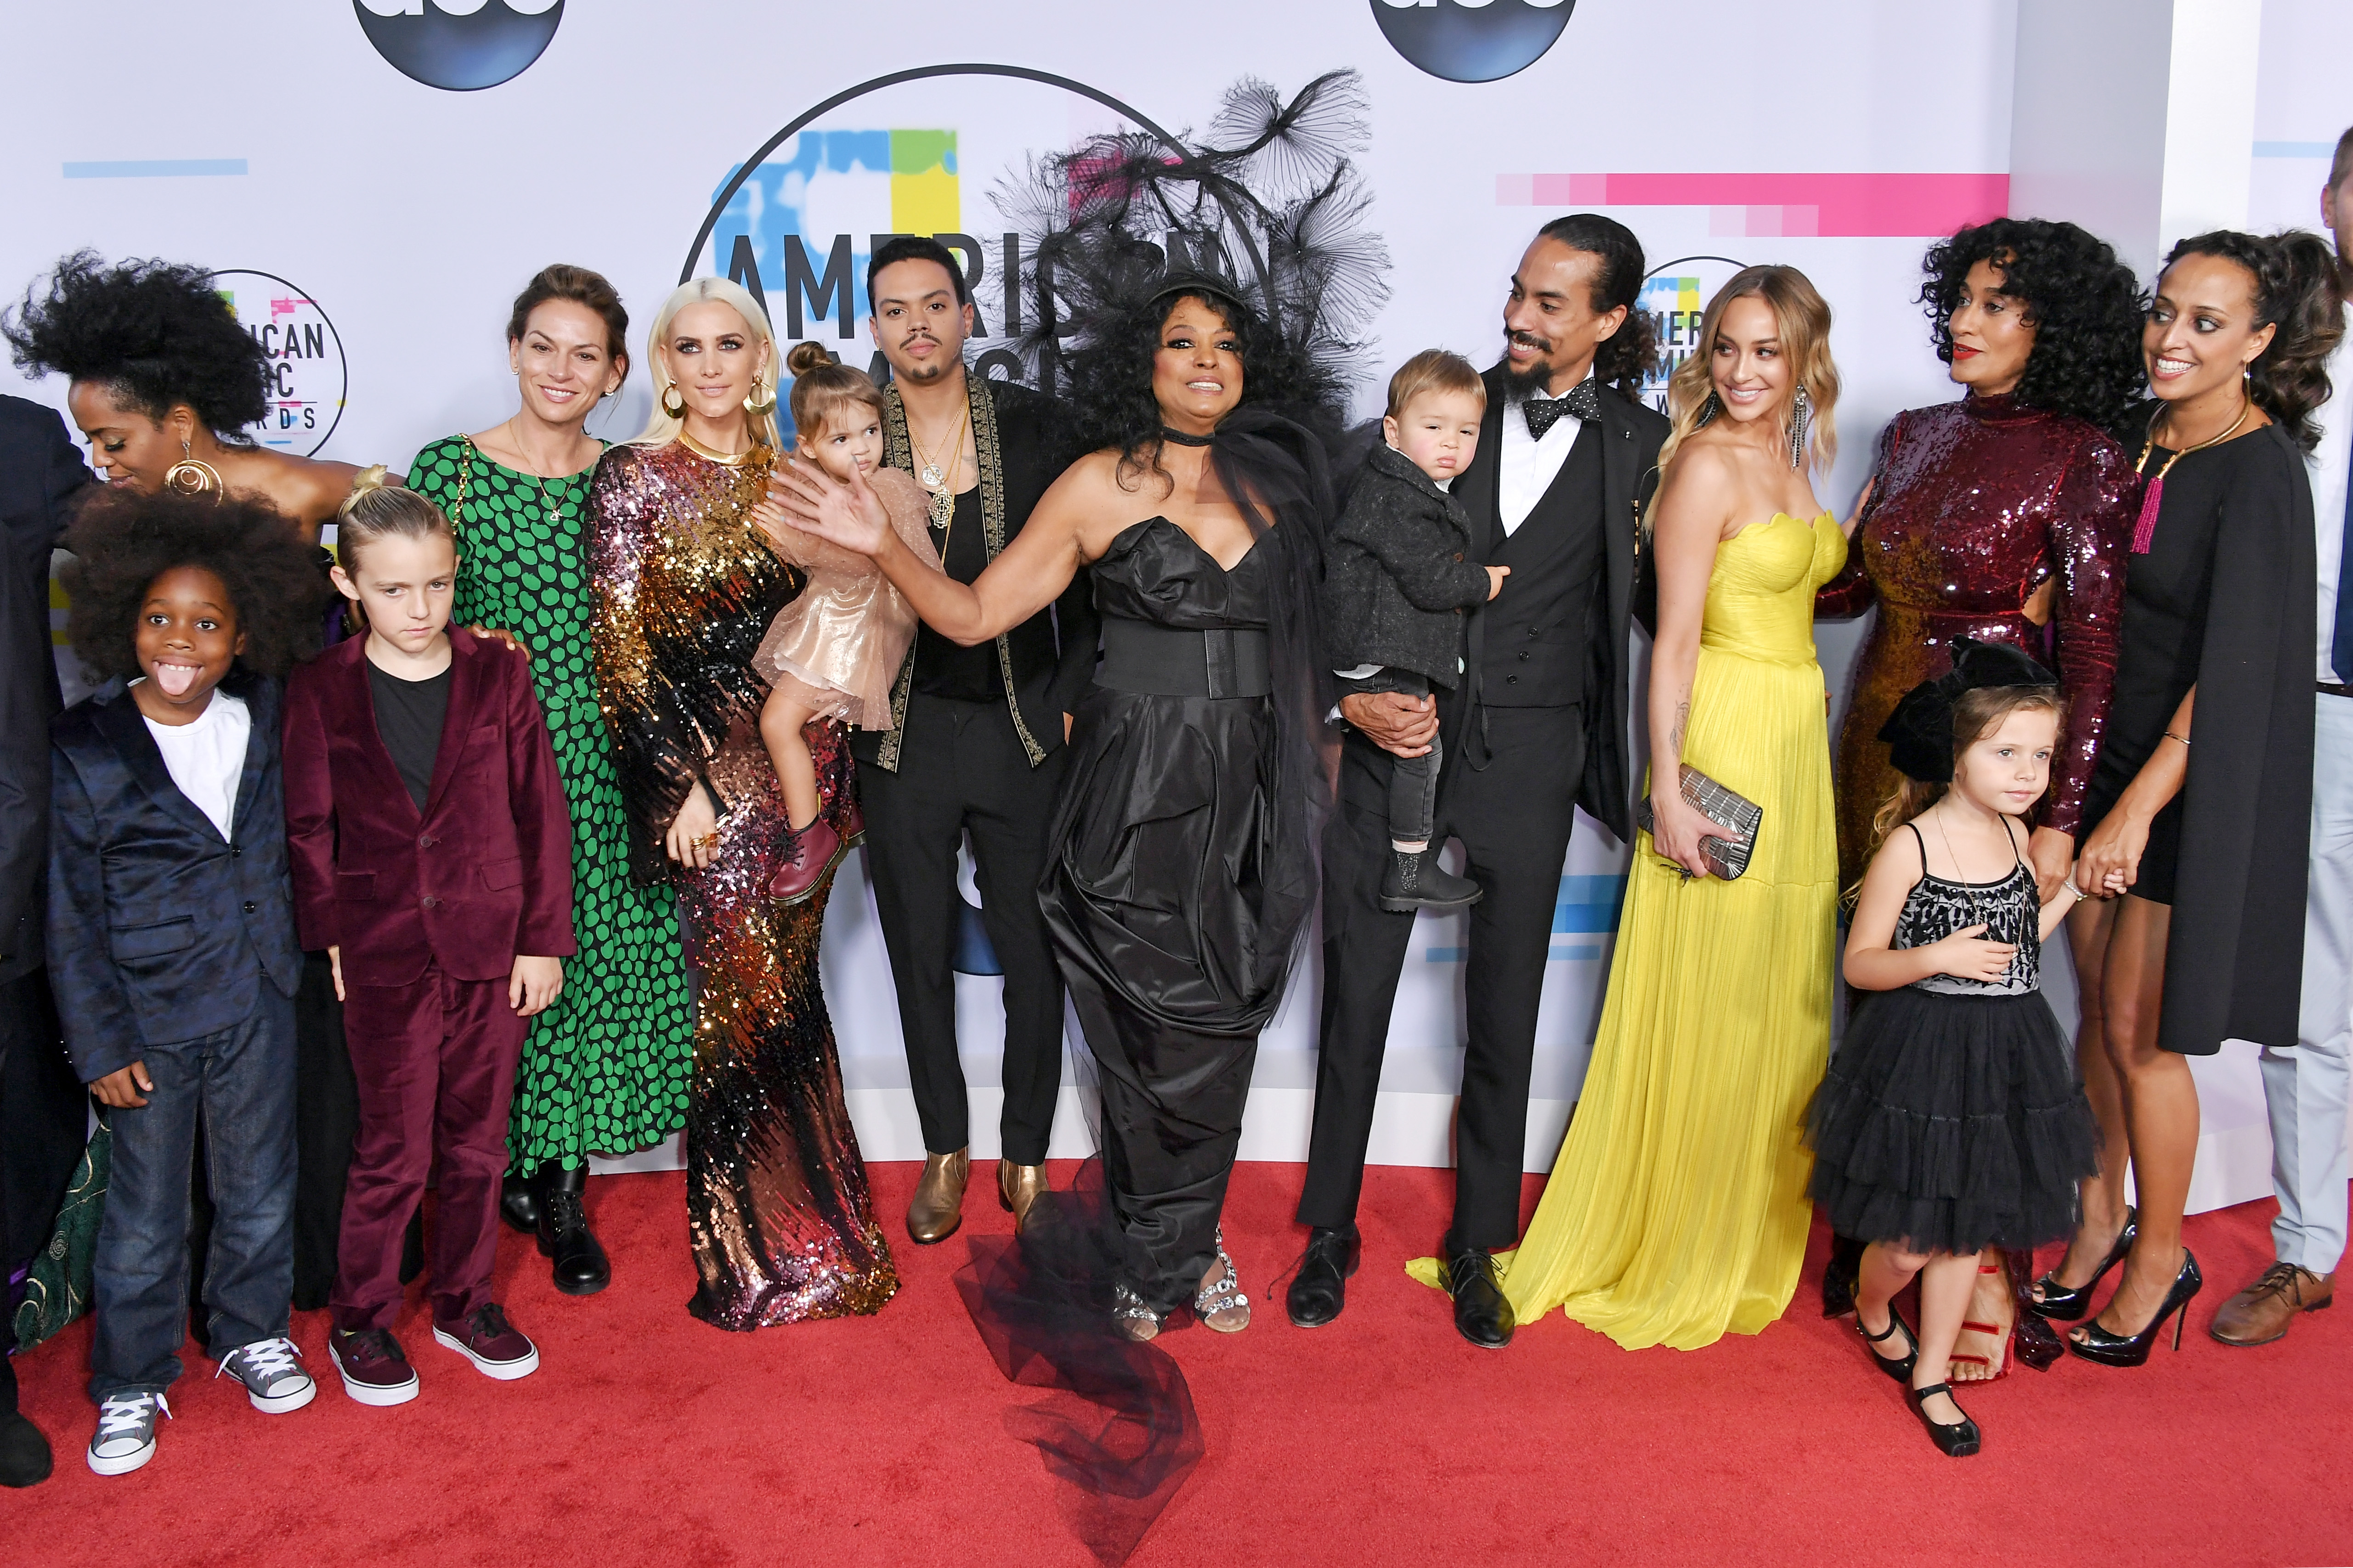 <div class='meta'><div class='origin-logo' data-origin='none'></div><span class='caption-text' data-credit='Neilson Barnard/Getty Images'>Ashlee Simpson, Evan Ross, Diana Ross, and  Tracee Ellis Ross attend the 2017 American Music Awards at Microsoft Theater on November 19, 2017 in Los Angeles, California.</span></div>